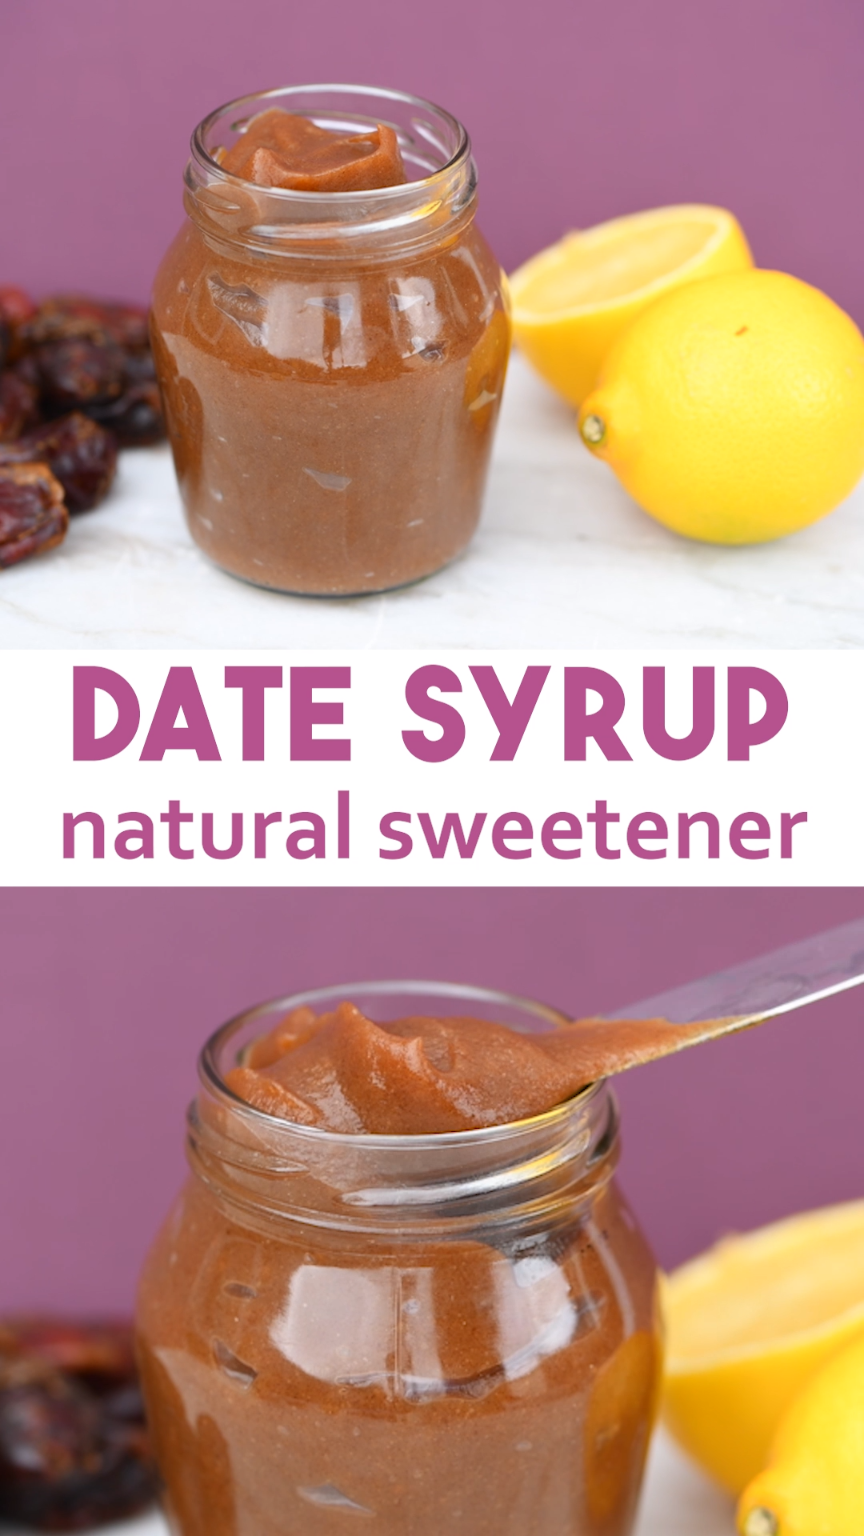 Natural Sweetener Recipe - Date Syrup Date Syrup N